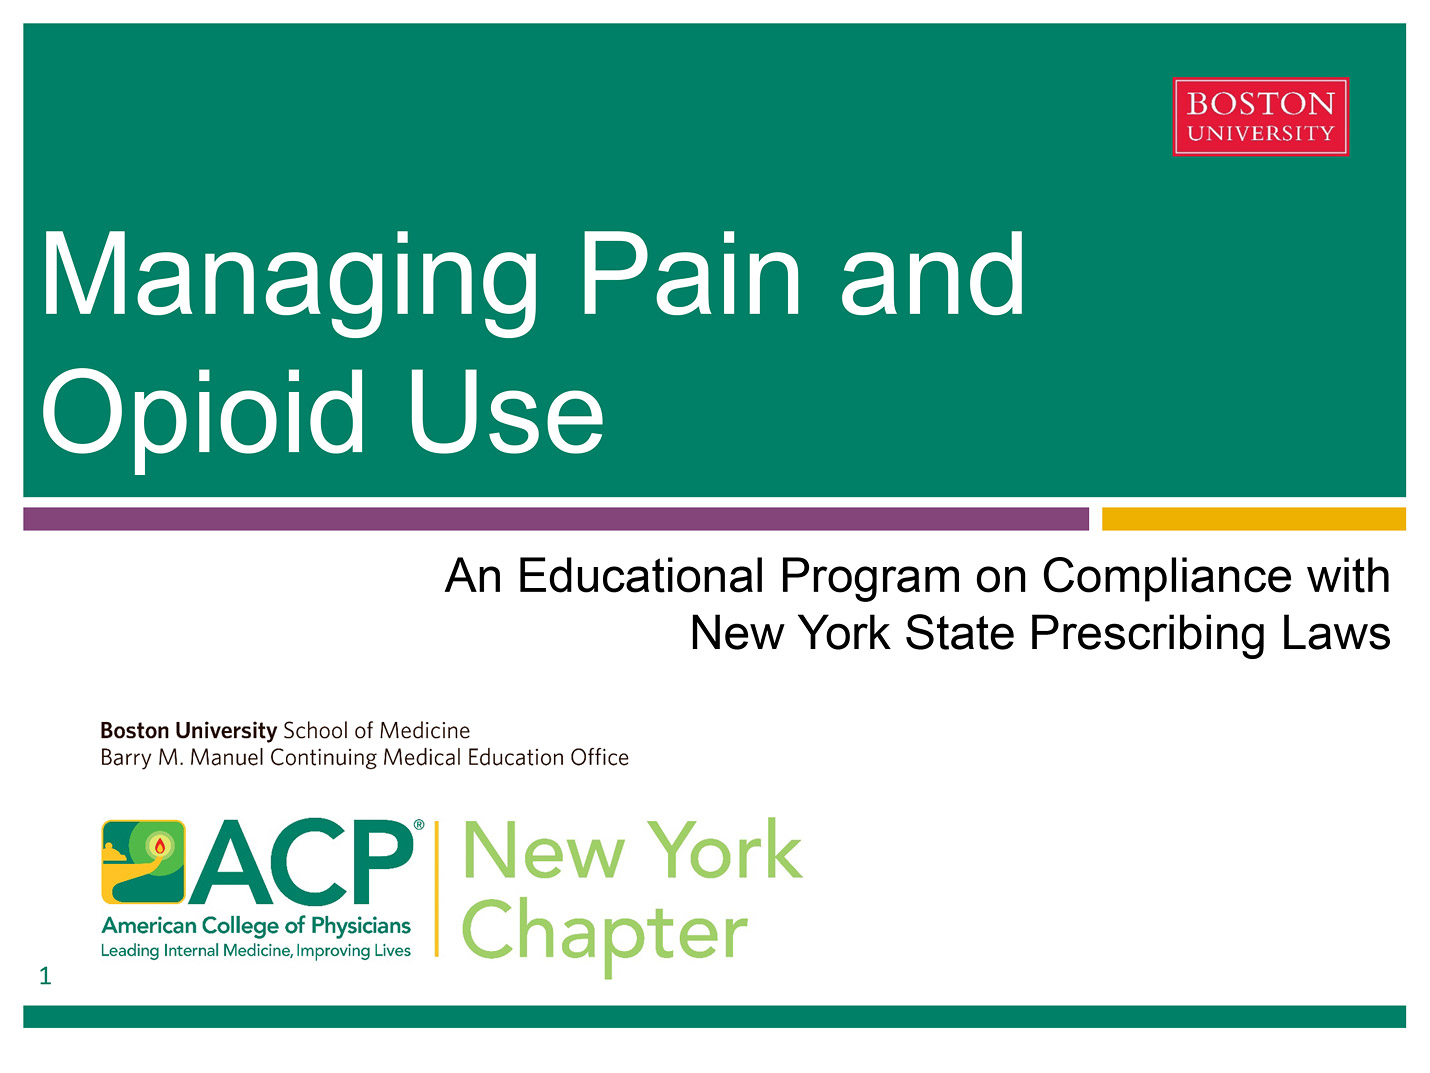 Managing Pain and Opioid Use: An Educational Program on Compliance with NYS Prescribing Laws